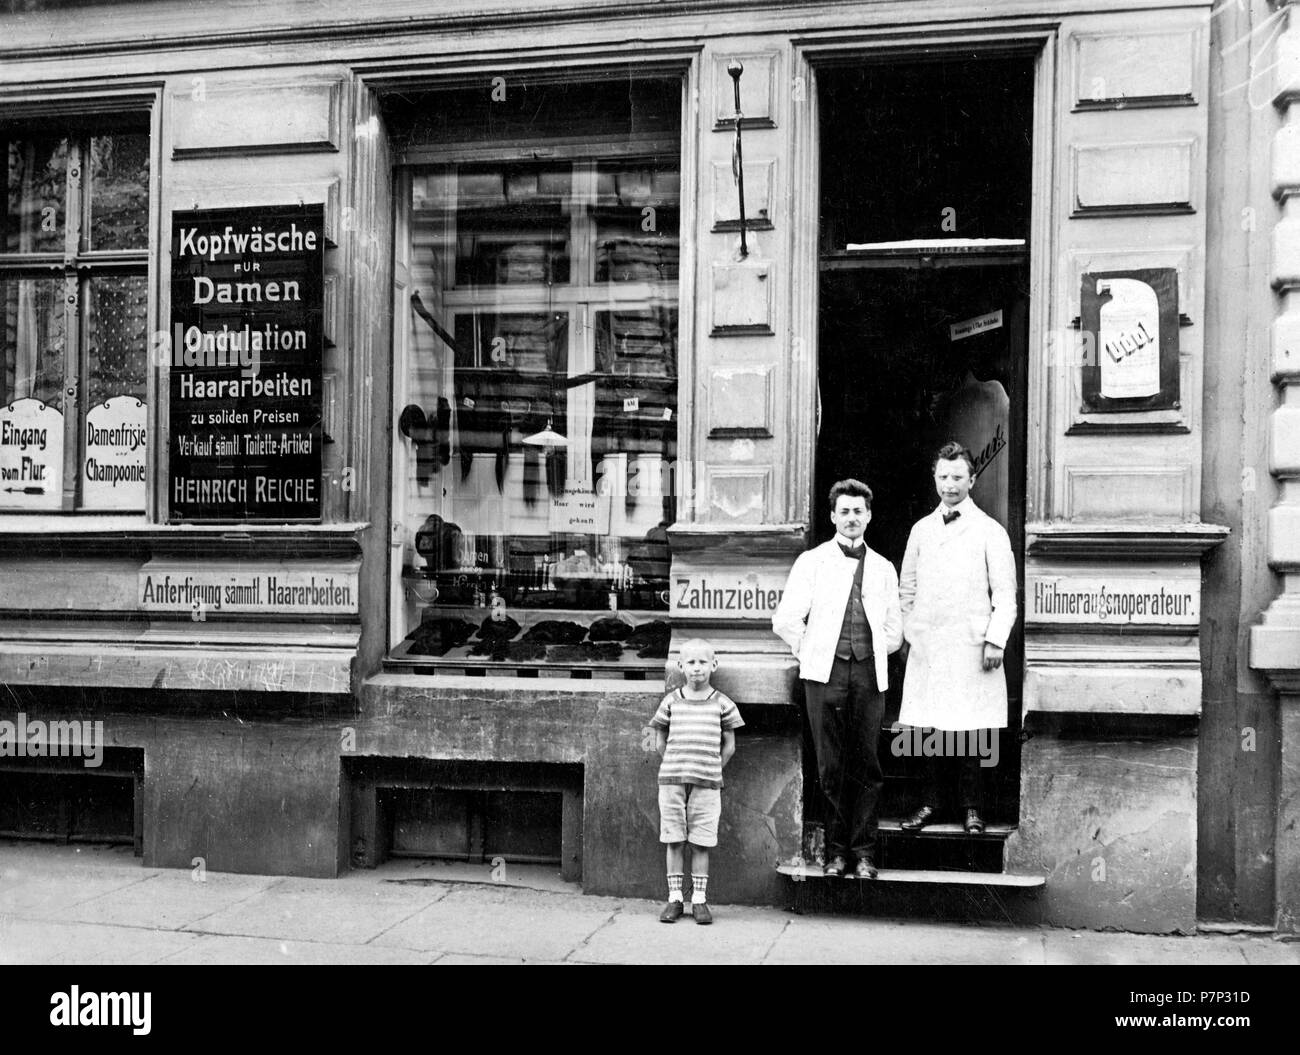 Hairdressing salon ca. 1915, exact place unknown, Germany - Stock Image